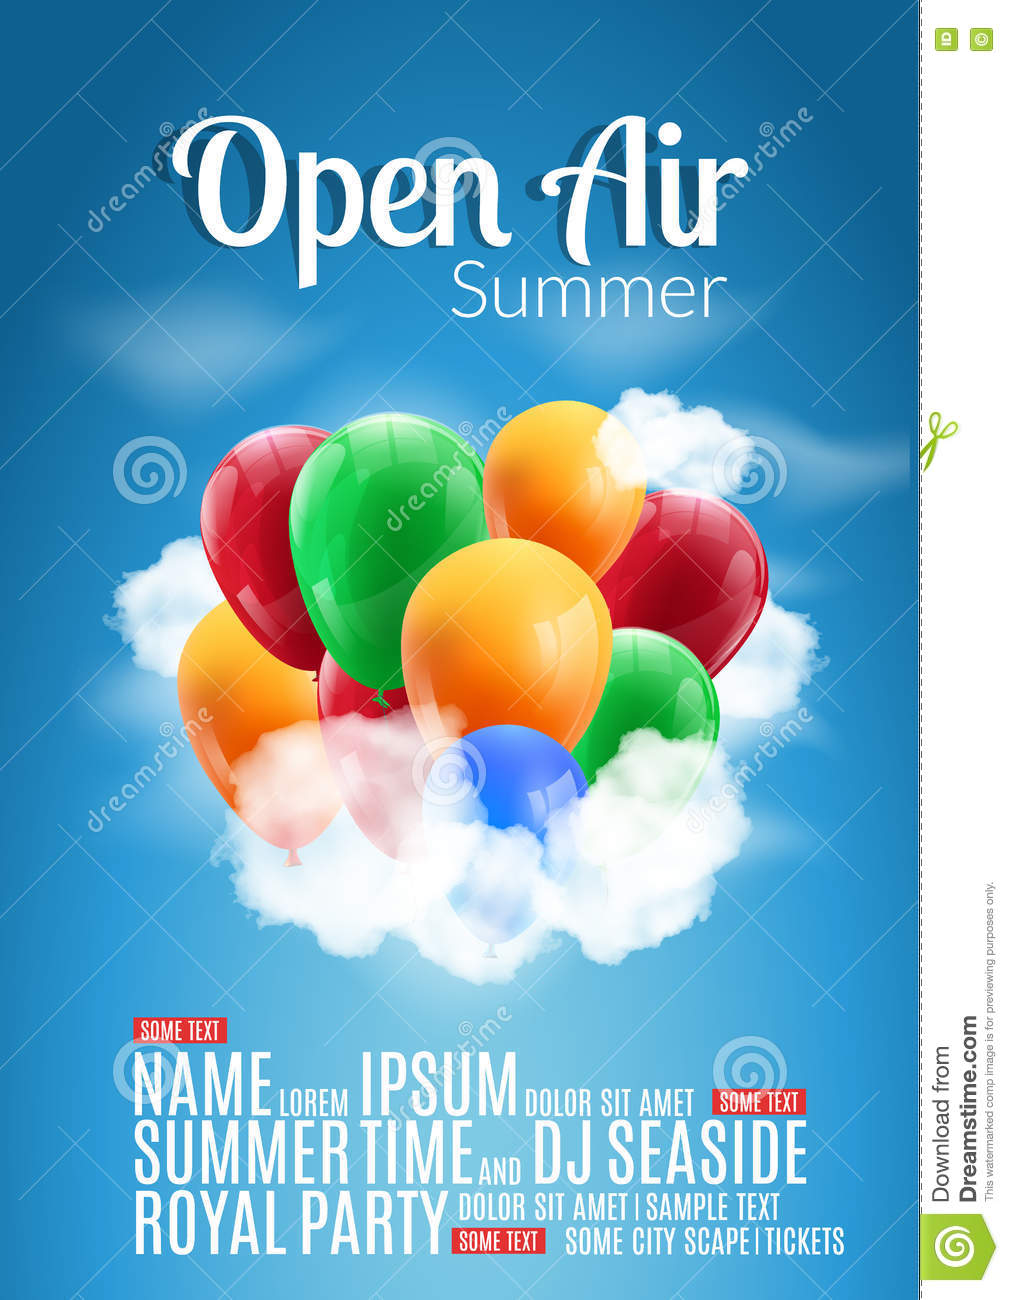 Poster design sample - Open Air Festival Party Poster Design Flyer Or Poster Template For Summer Open Air With Colorful Balloons